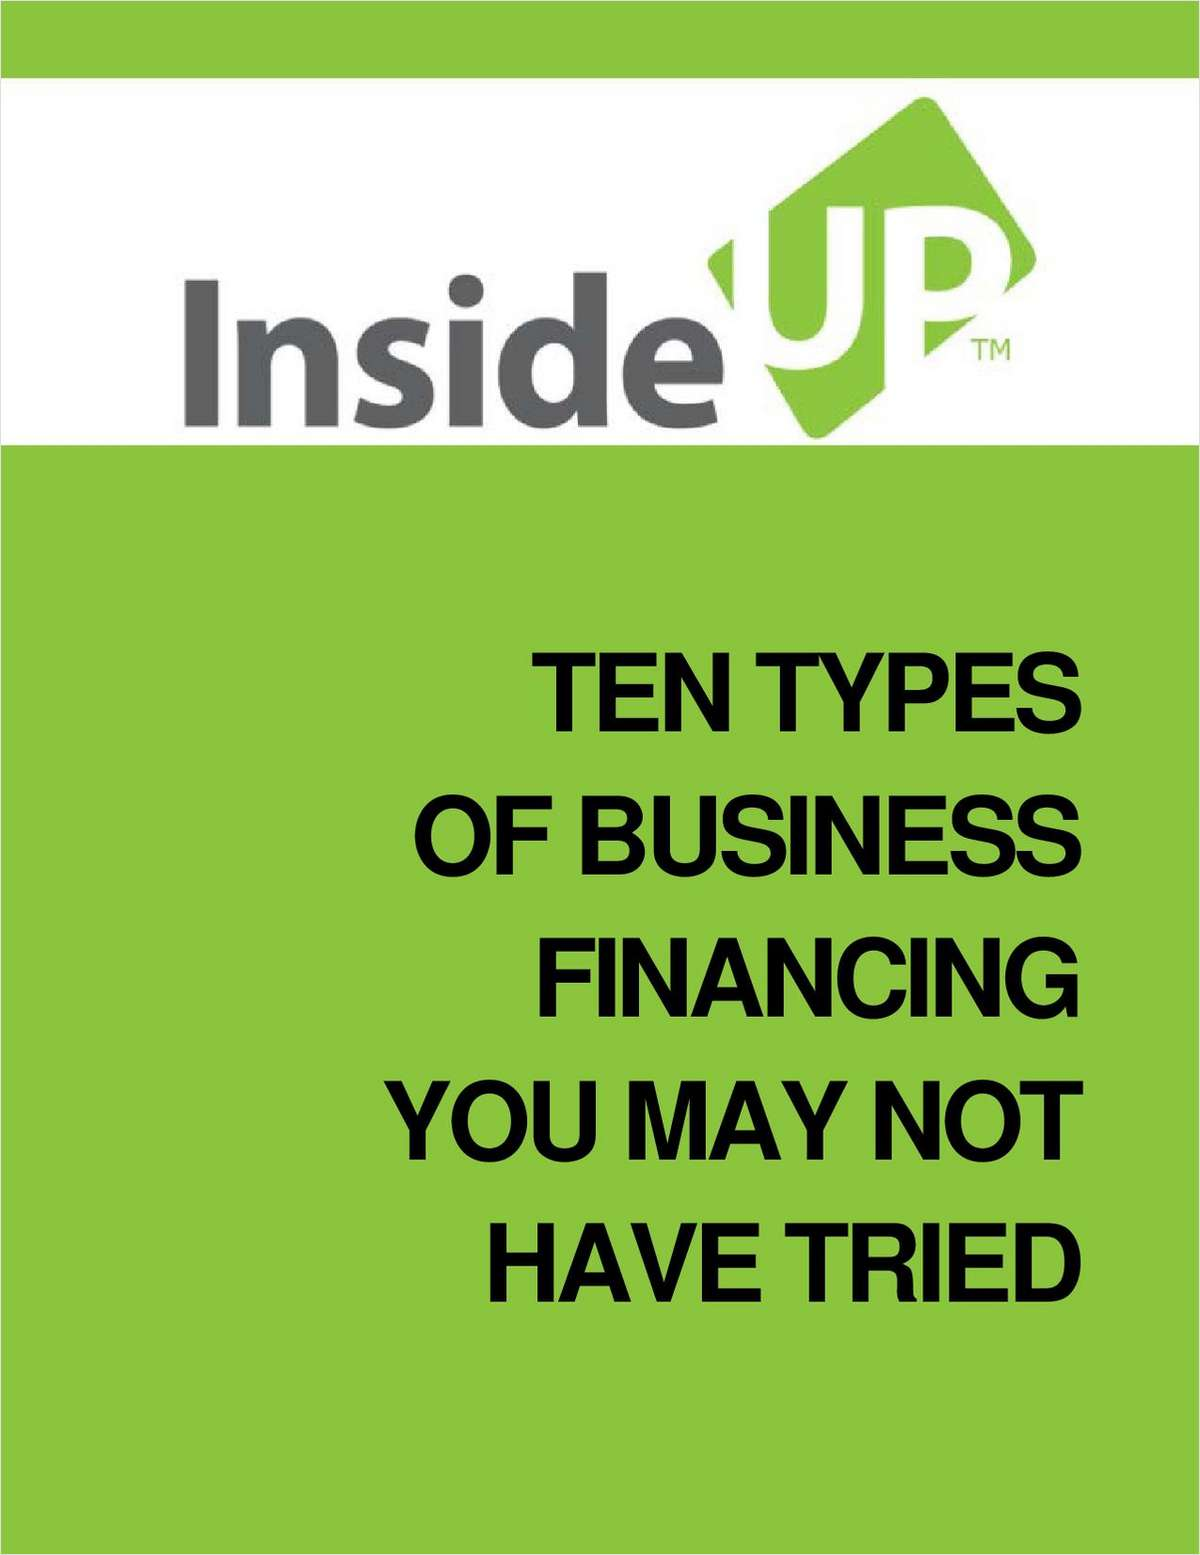 Ten Types of Business Financing You May Not Have Tried